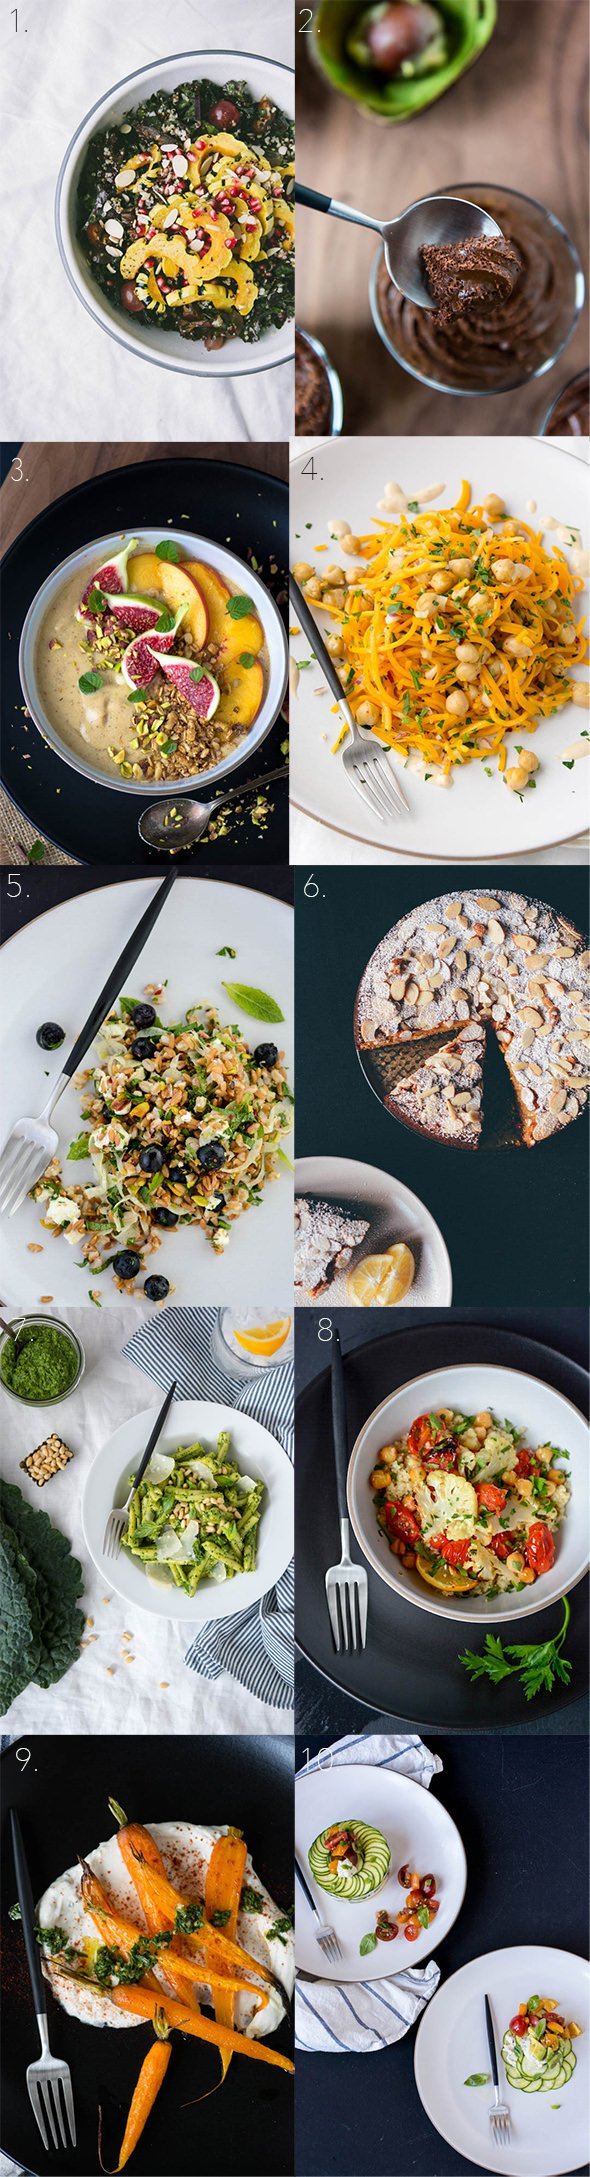 Top 10 recipes of 2015